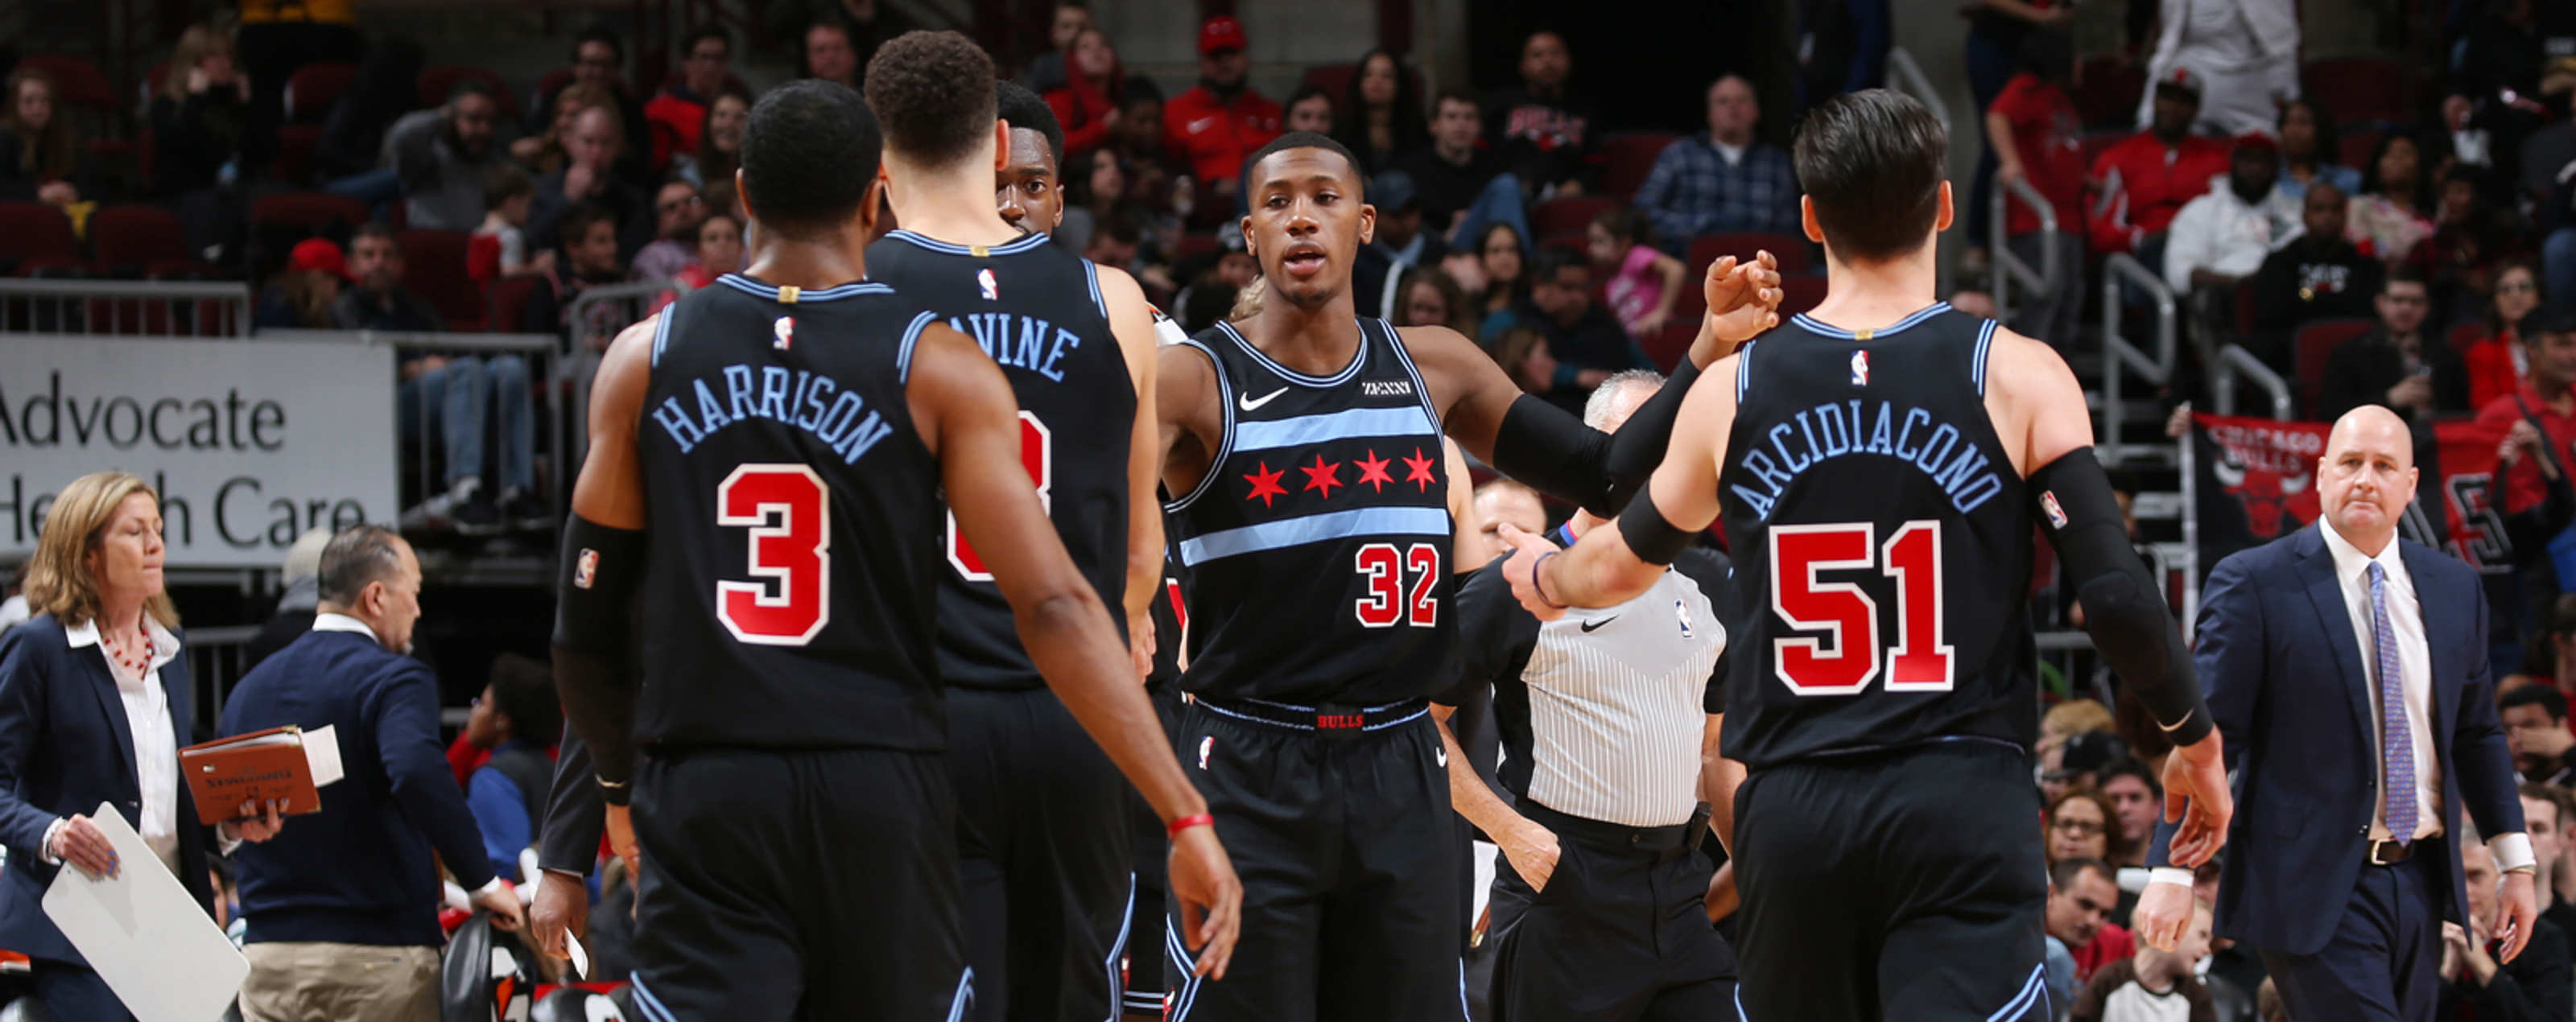 Kris Dunn #32 of the Chicago Bulls celebrates with his team during the game against the Brooklyn Nets on January 6, 2019 at the United Center in Chicago, Illinois.